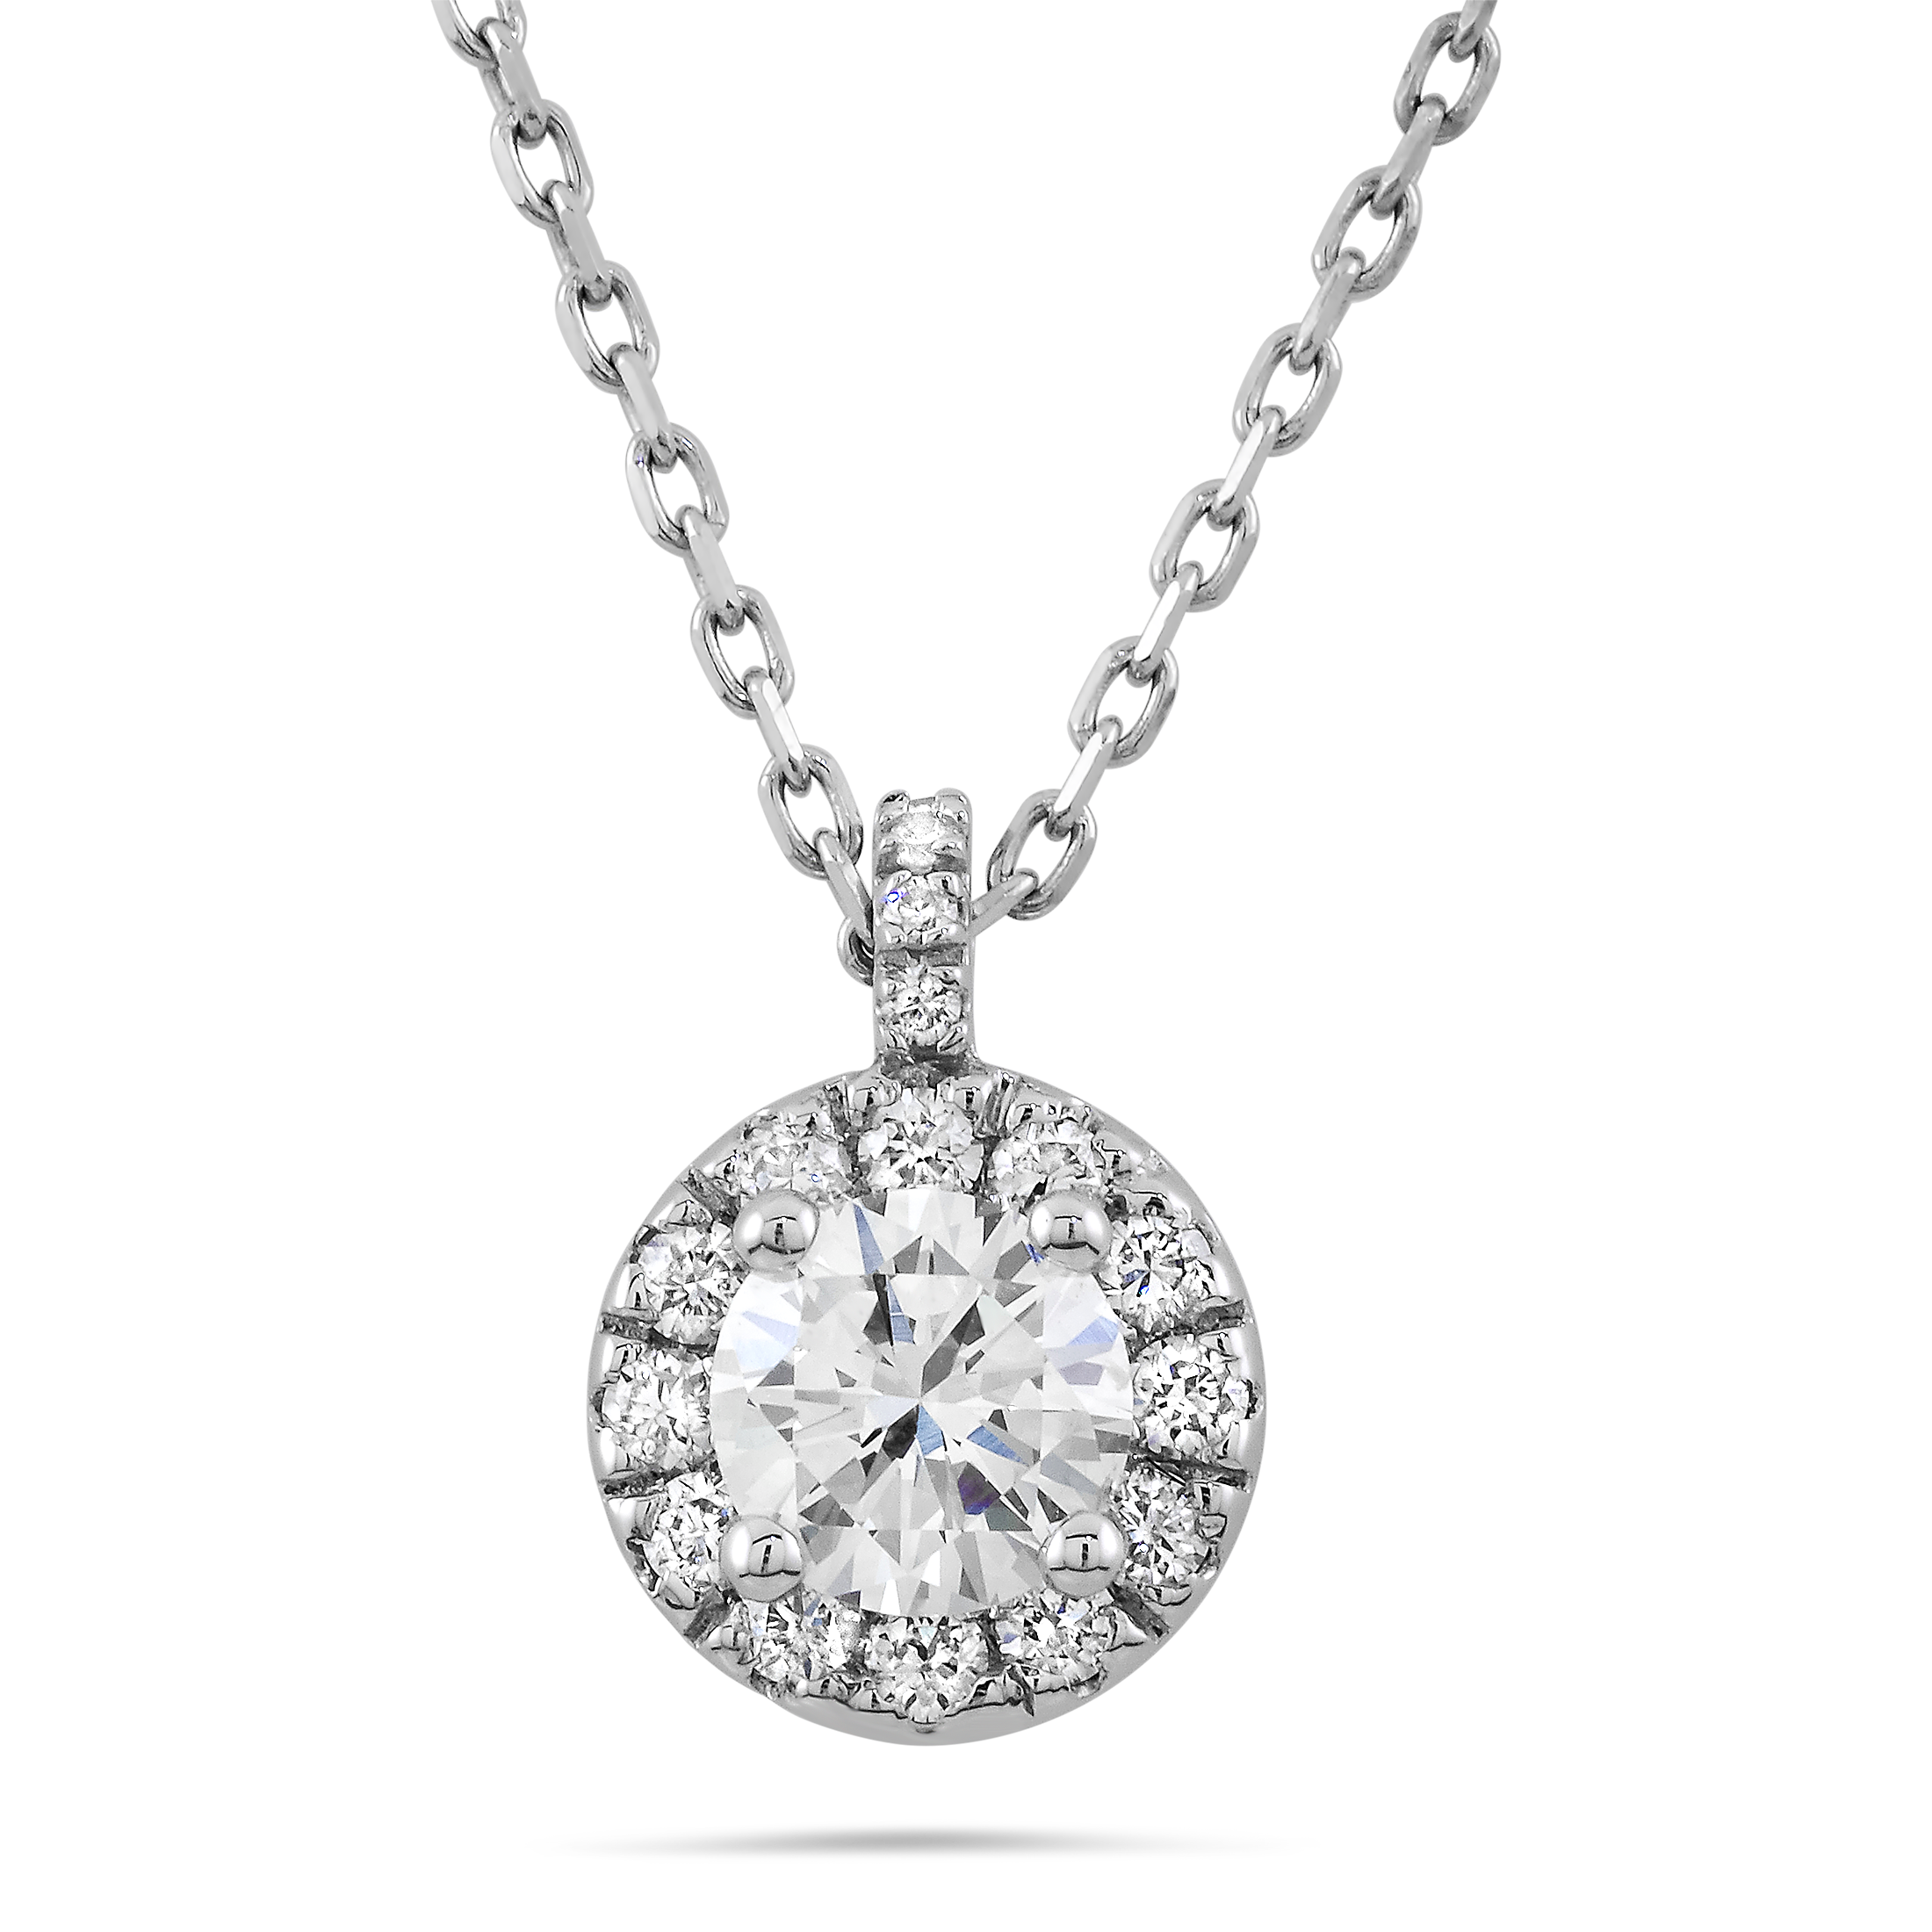 Jewellery Necklace PNG image #36053